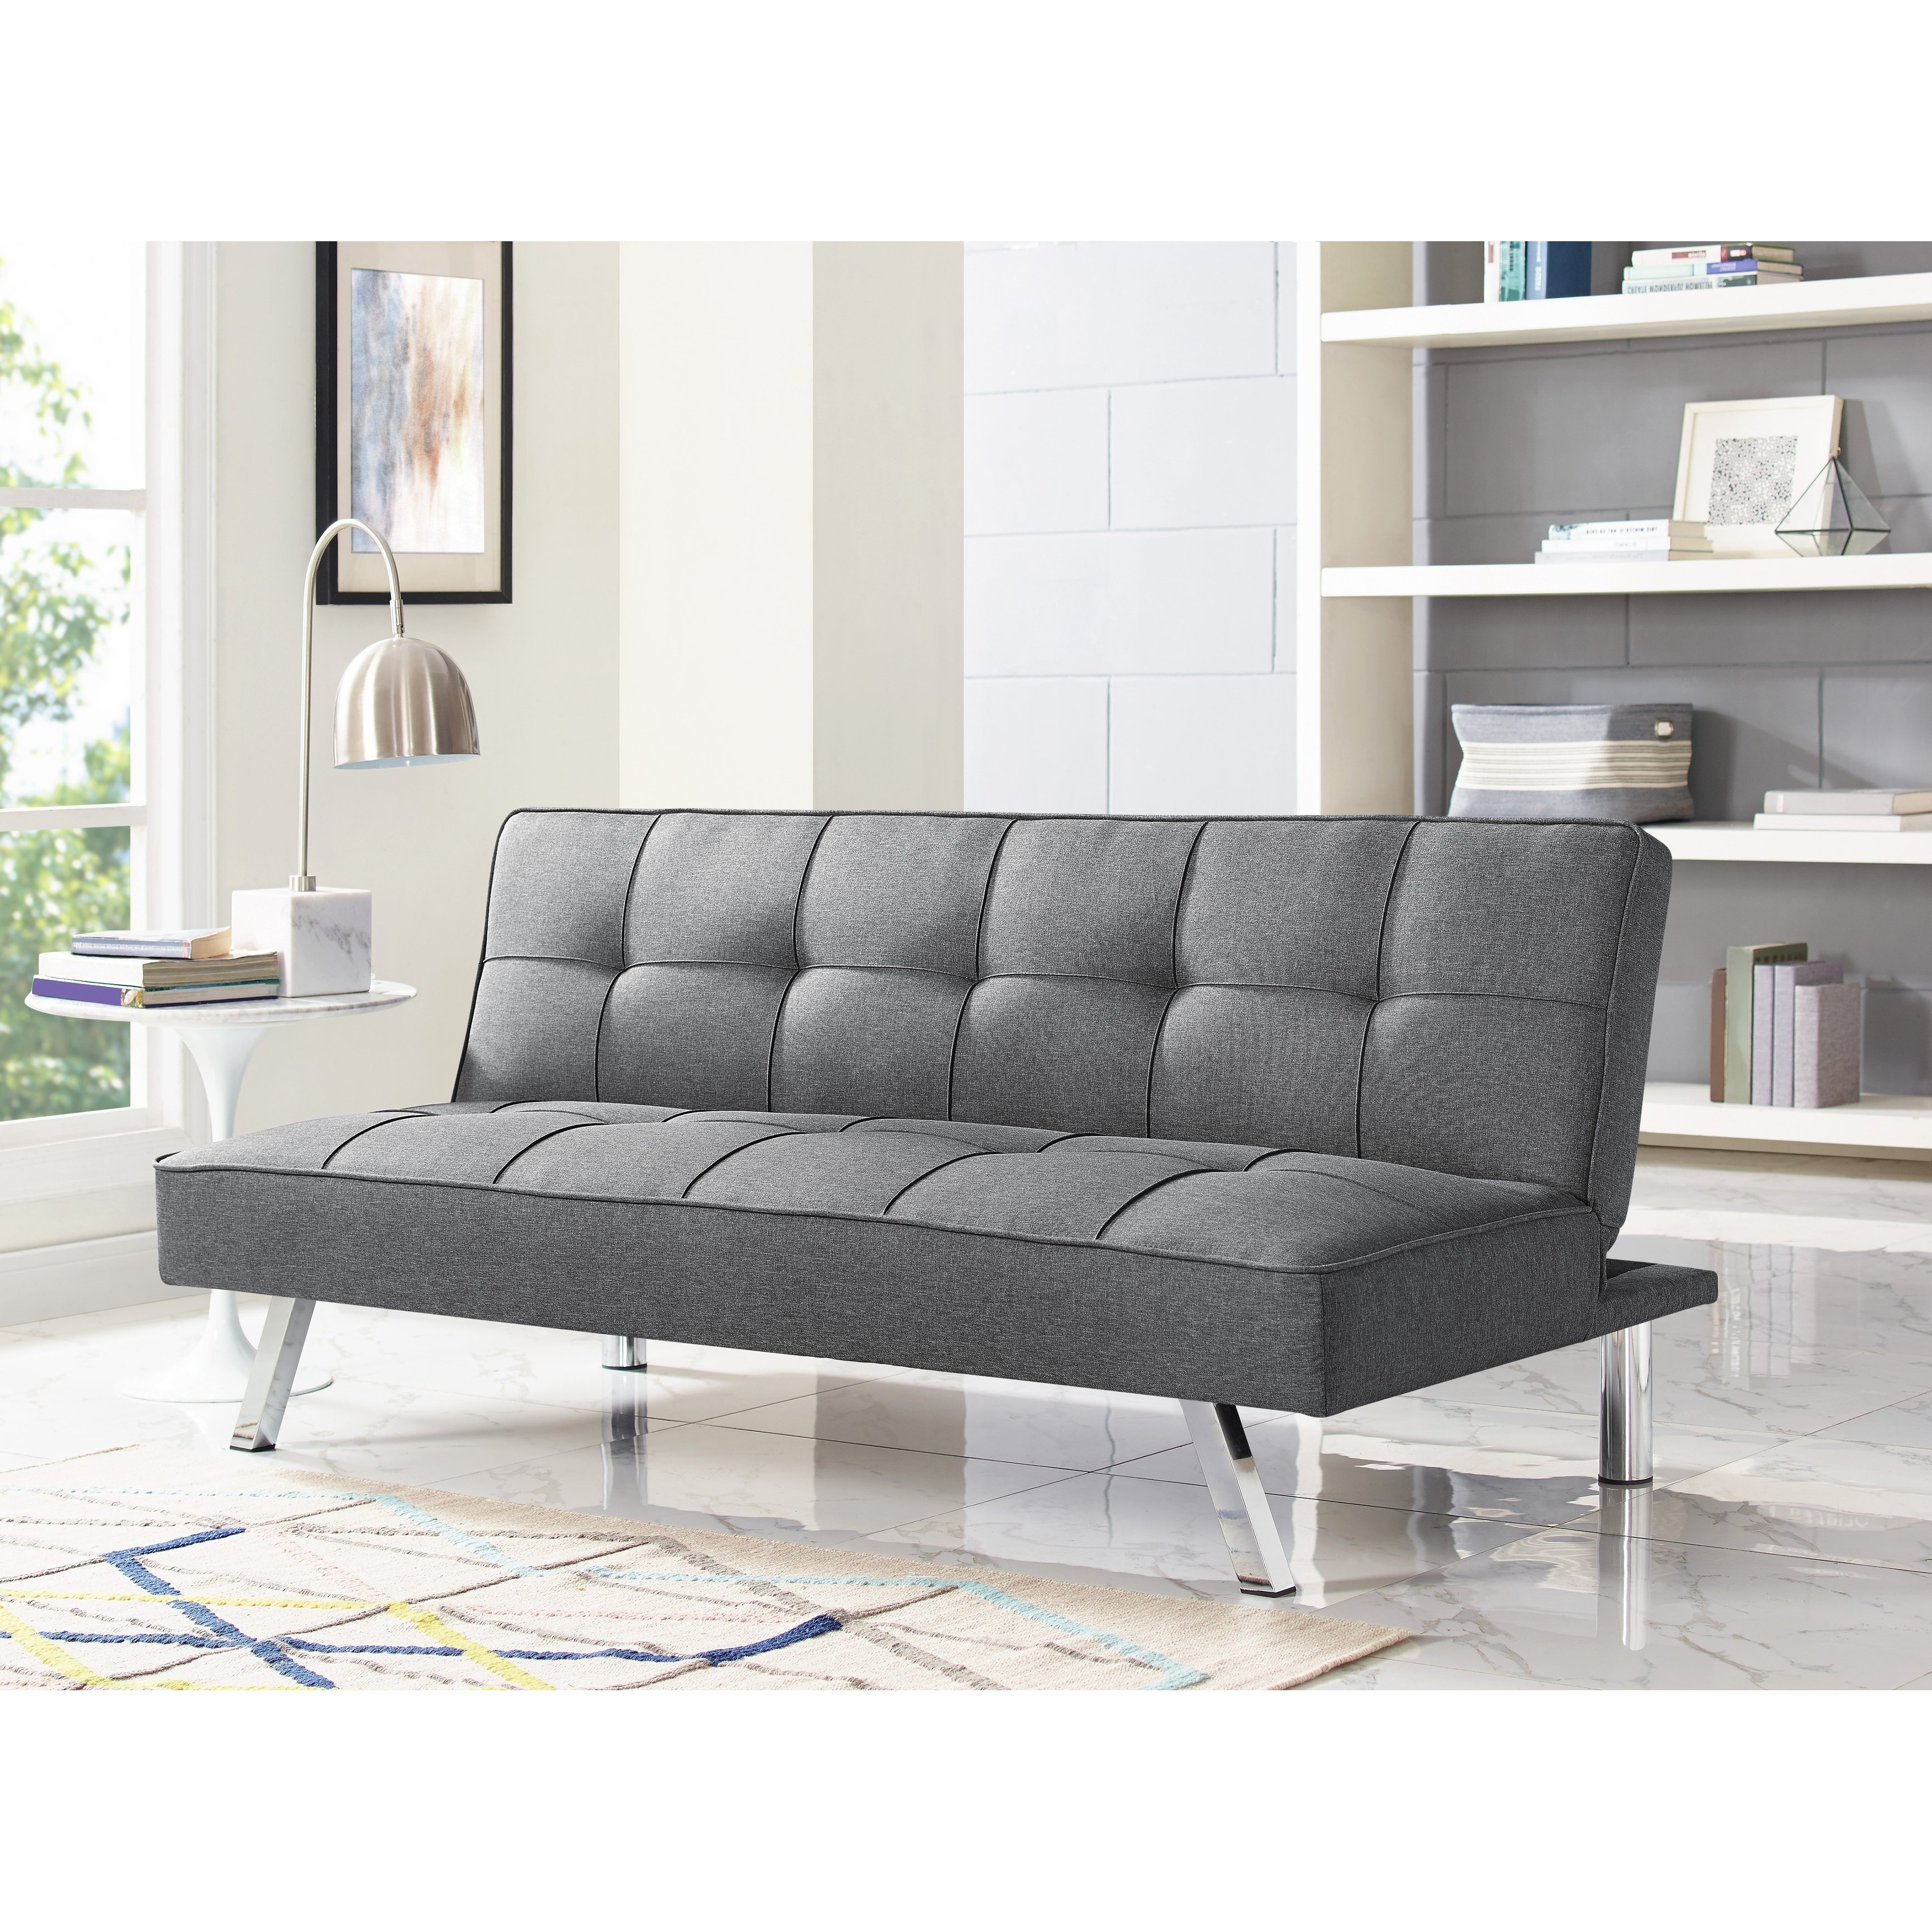 Cohen Foam Oversized Sofa Chairs In Most Recently Released Shop Serta Charlie Tufted Grey Upholstered Convertible Sofa – Free (View 7 of 20)